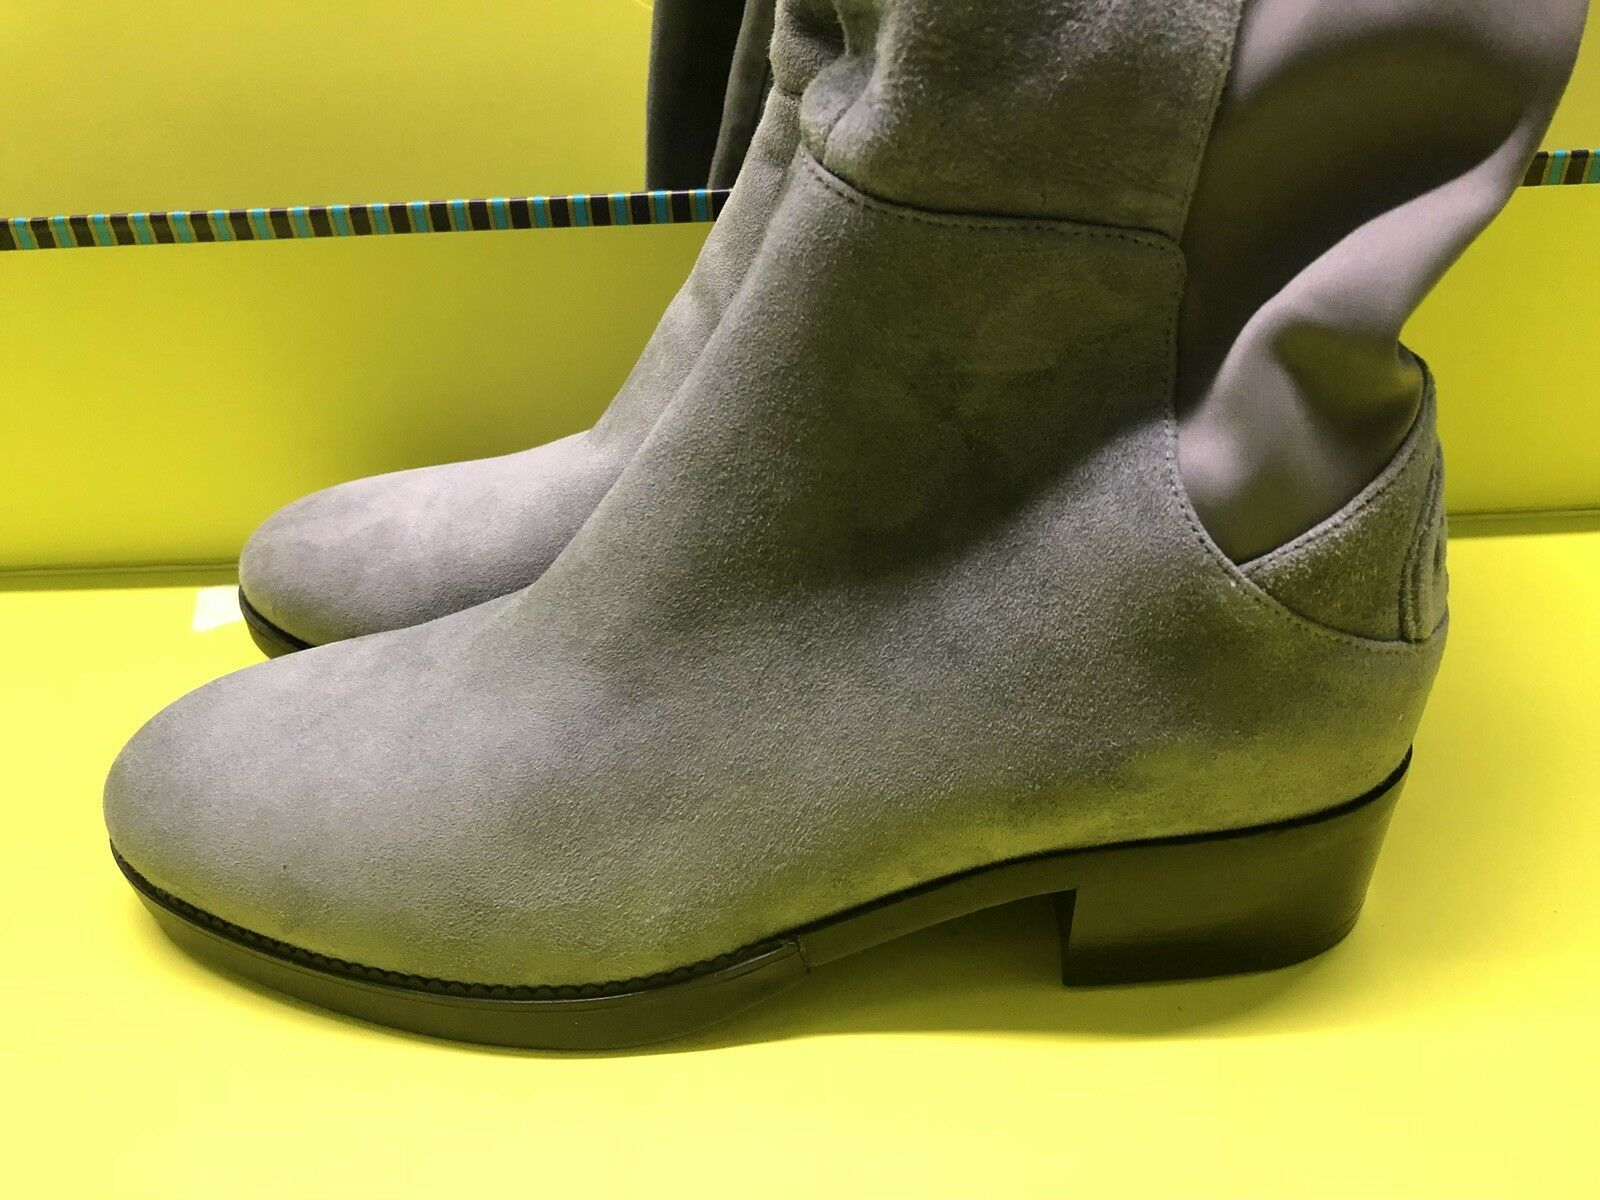 NEW  550 TORY BURCH BURCH BURCH CAITLIN STRETCH SUEDE OVER THE KNEE OTK BOOT 7 DK GREY 5915e9